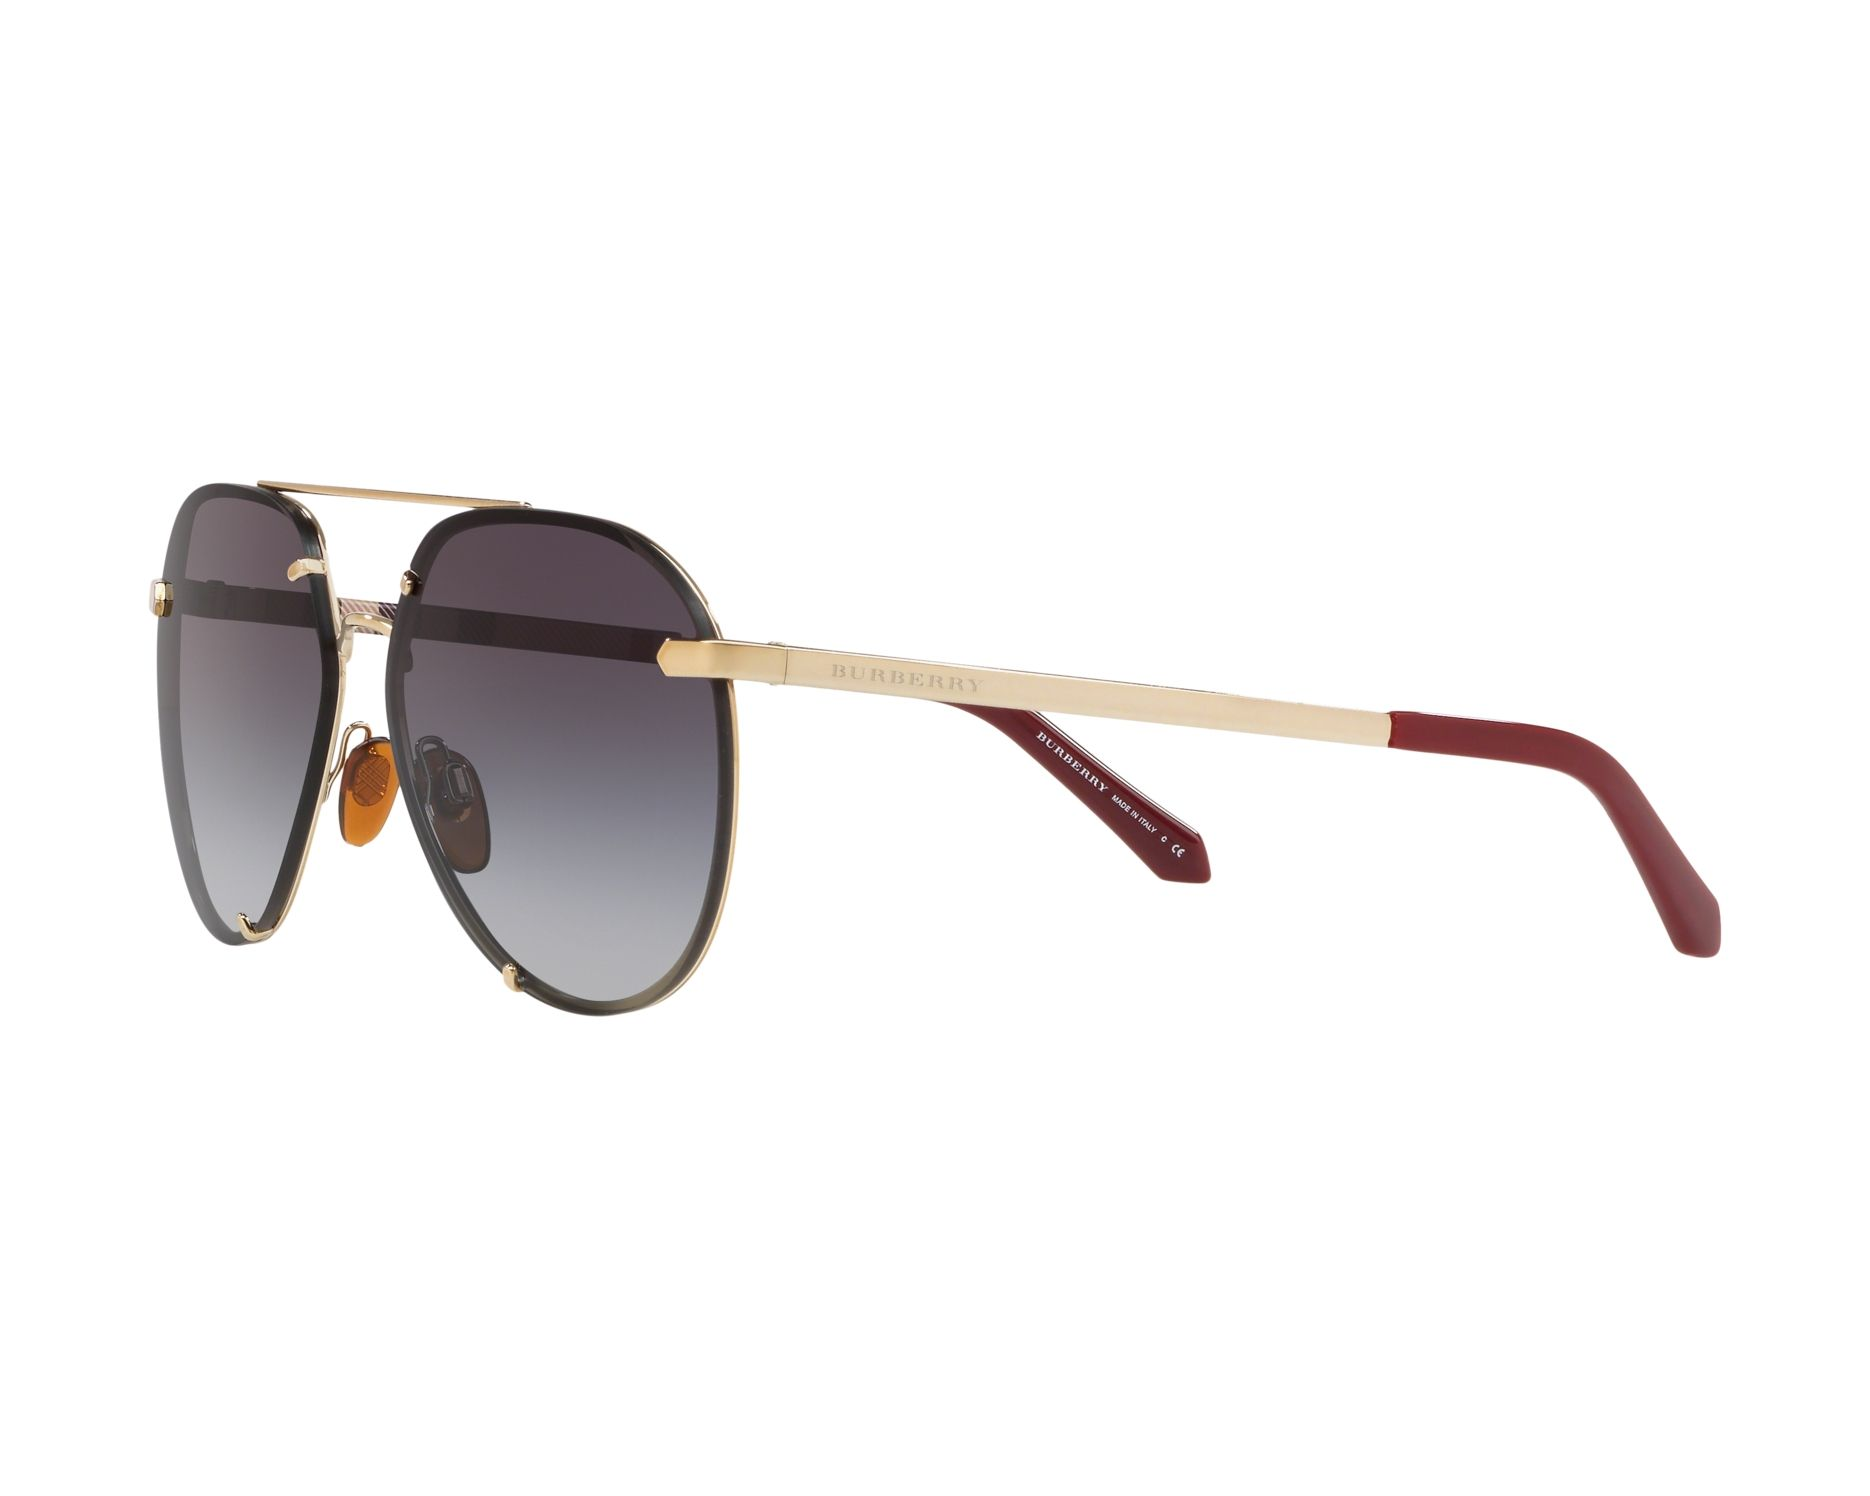 f947bc7821 Sunglasses Burberry BE-3099 11458G 61-14 Gold 360 degree view 3